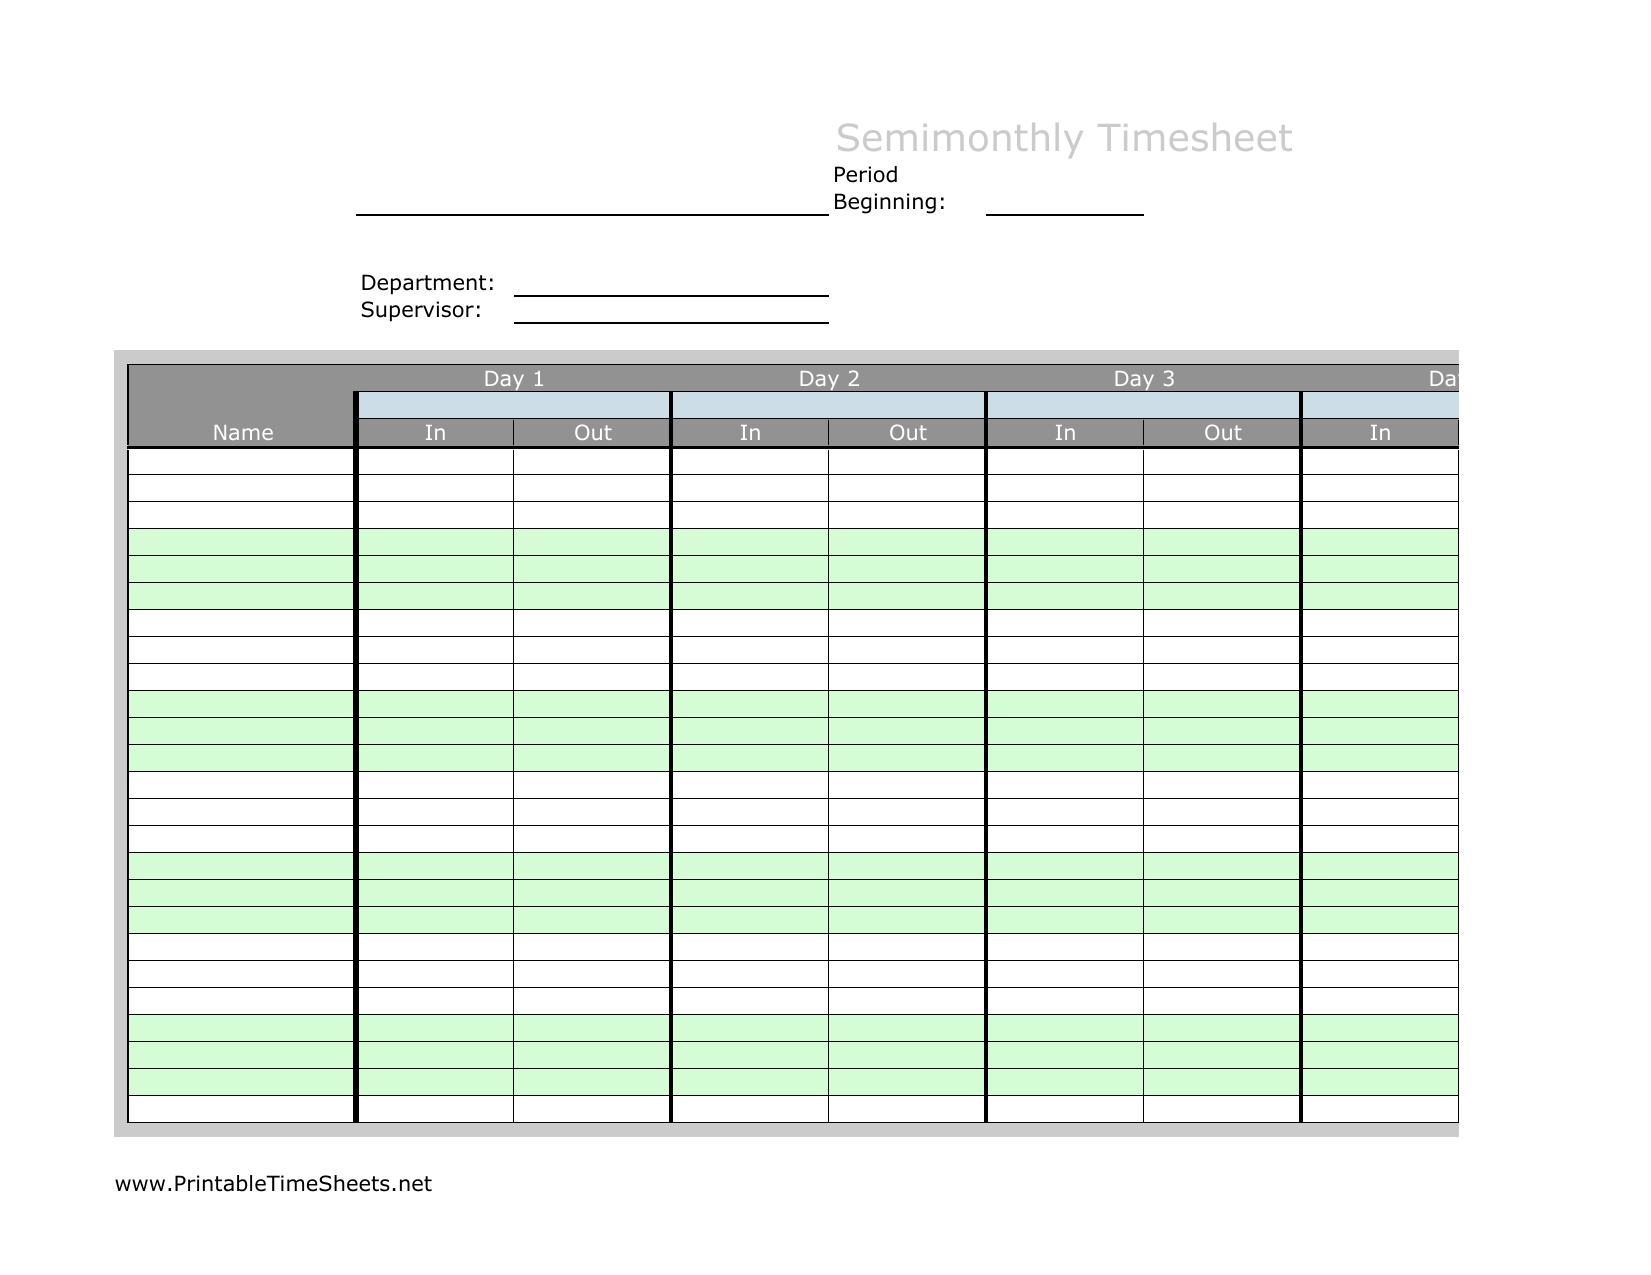 Time tracking can be extremely tedious, but it's an expected part of doing business for many agencies and firms. Download Semi Month Timesheet Template Excel Pdf Rtf Word Freedownloads Net